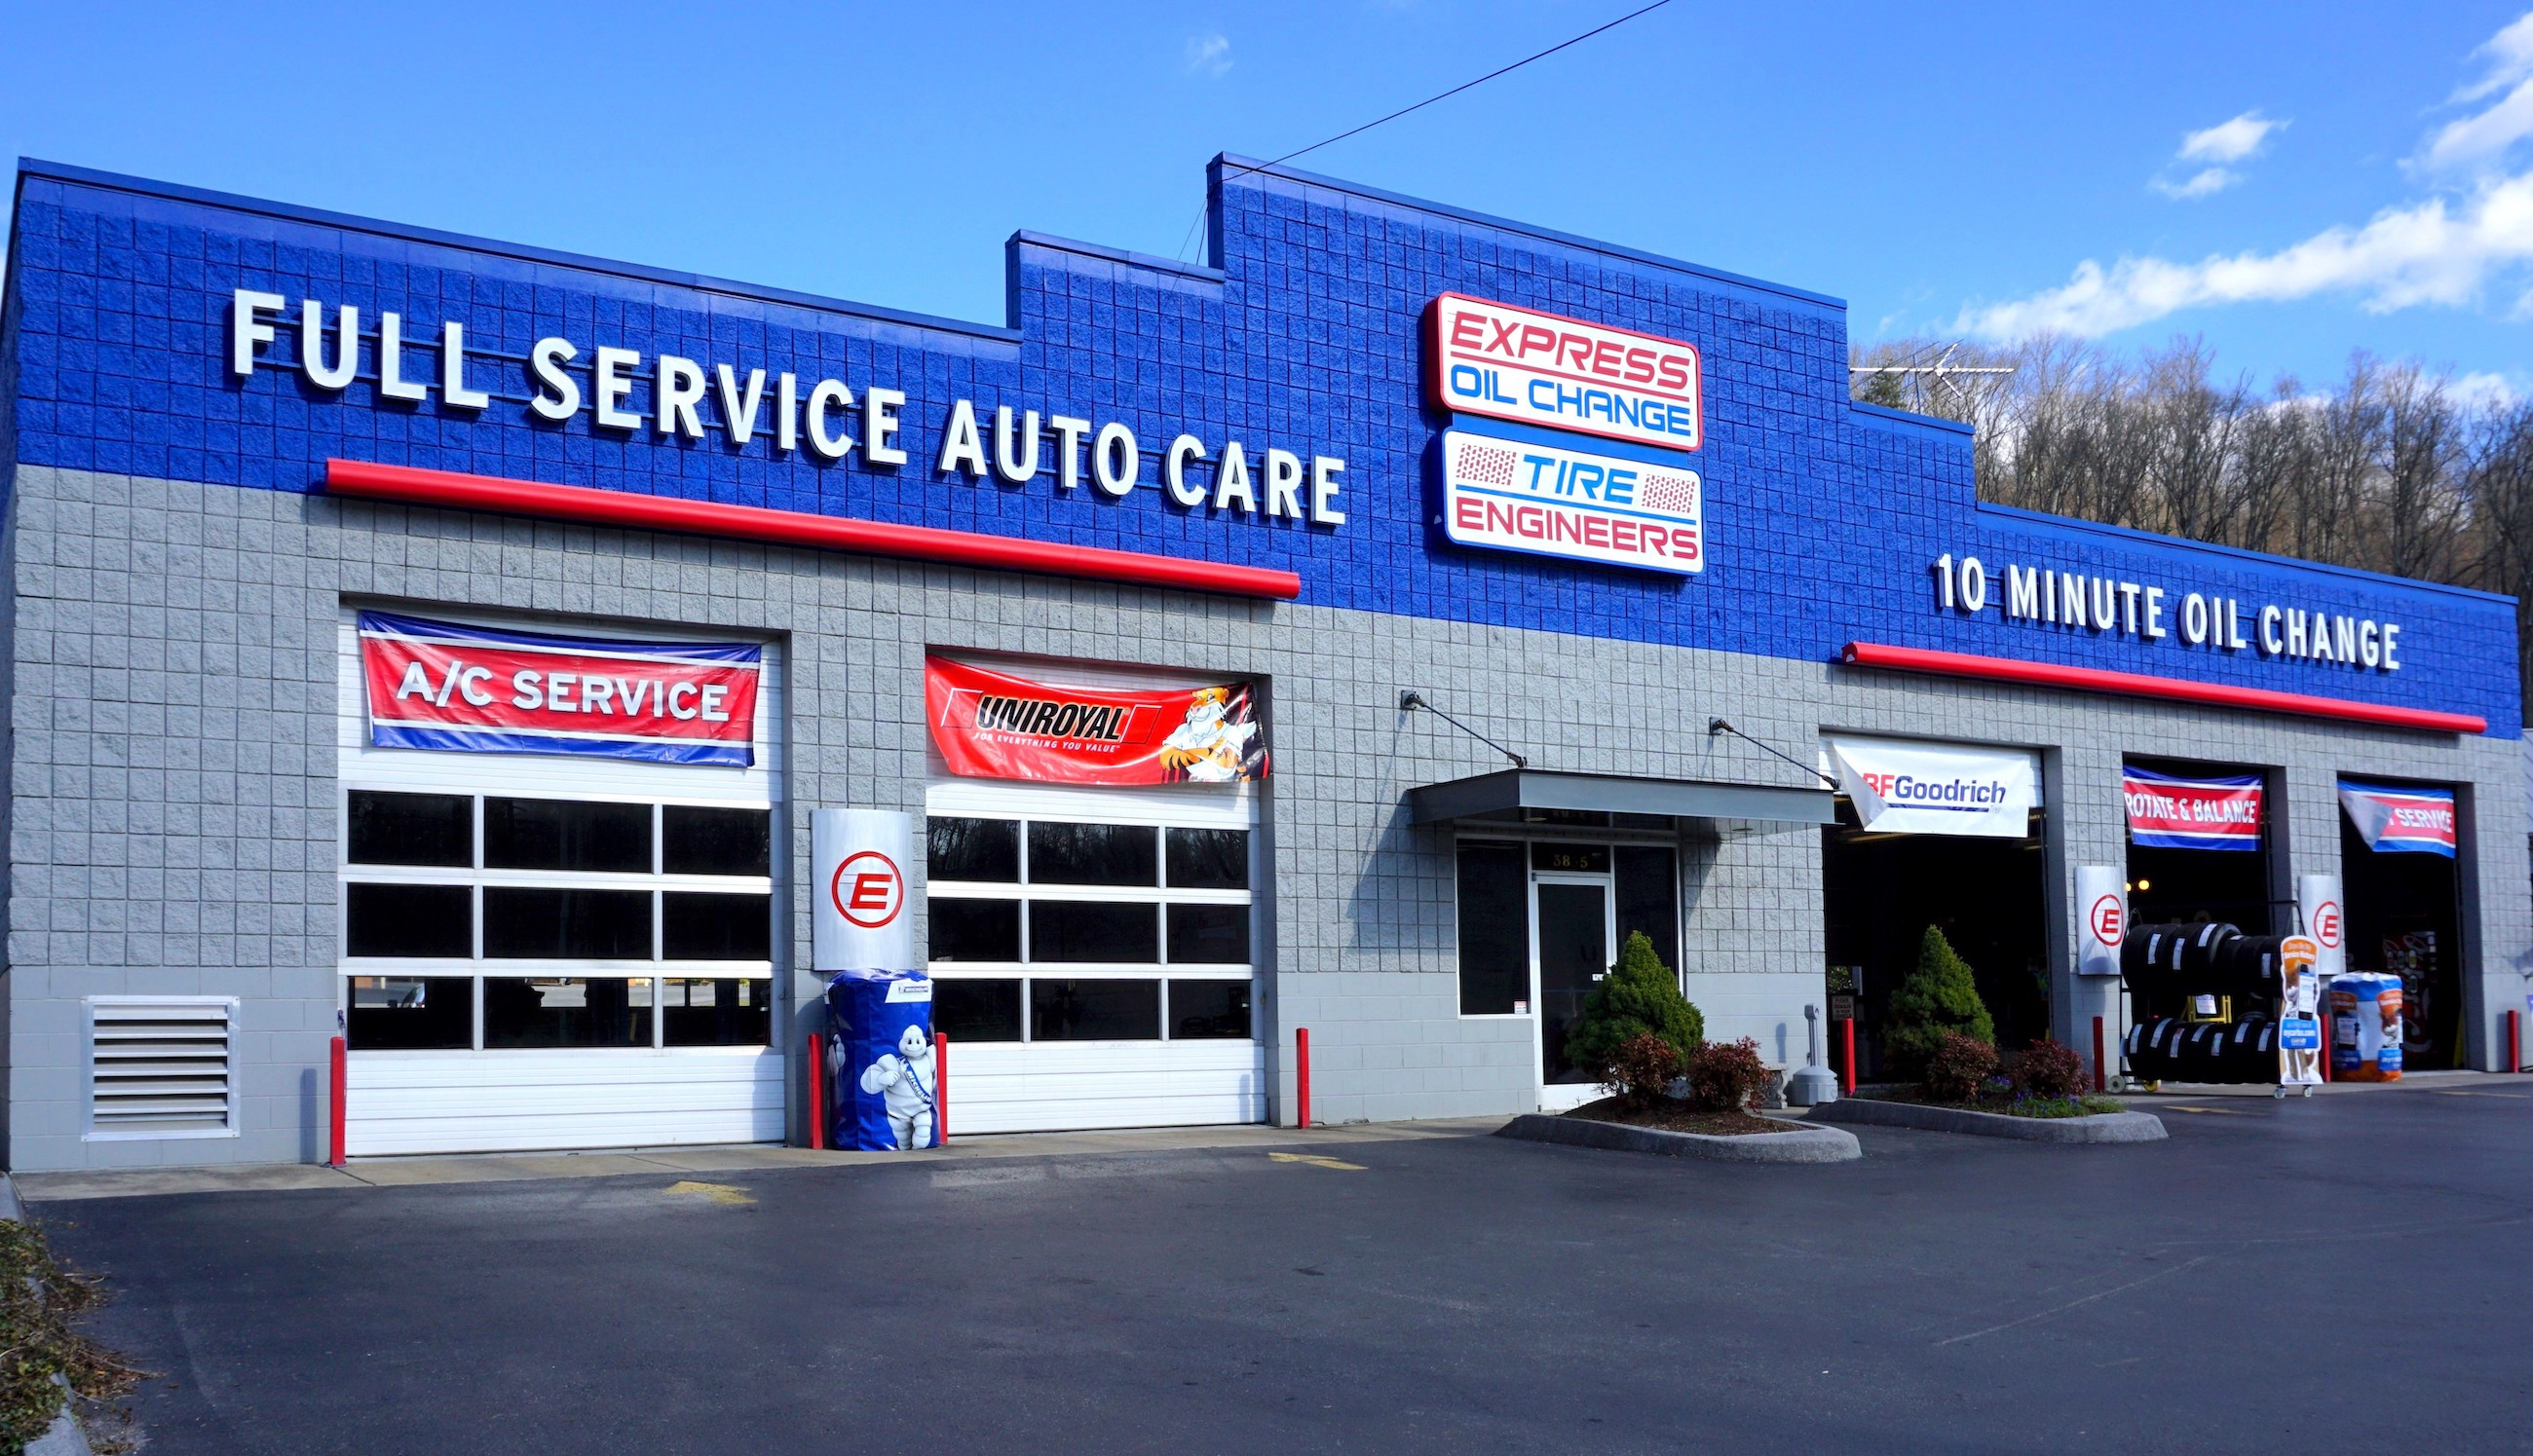 Express Oil Change & Tire Engineers Kingsport, TN - Fort Henry Drive store